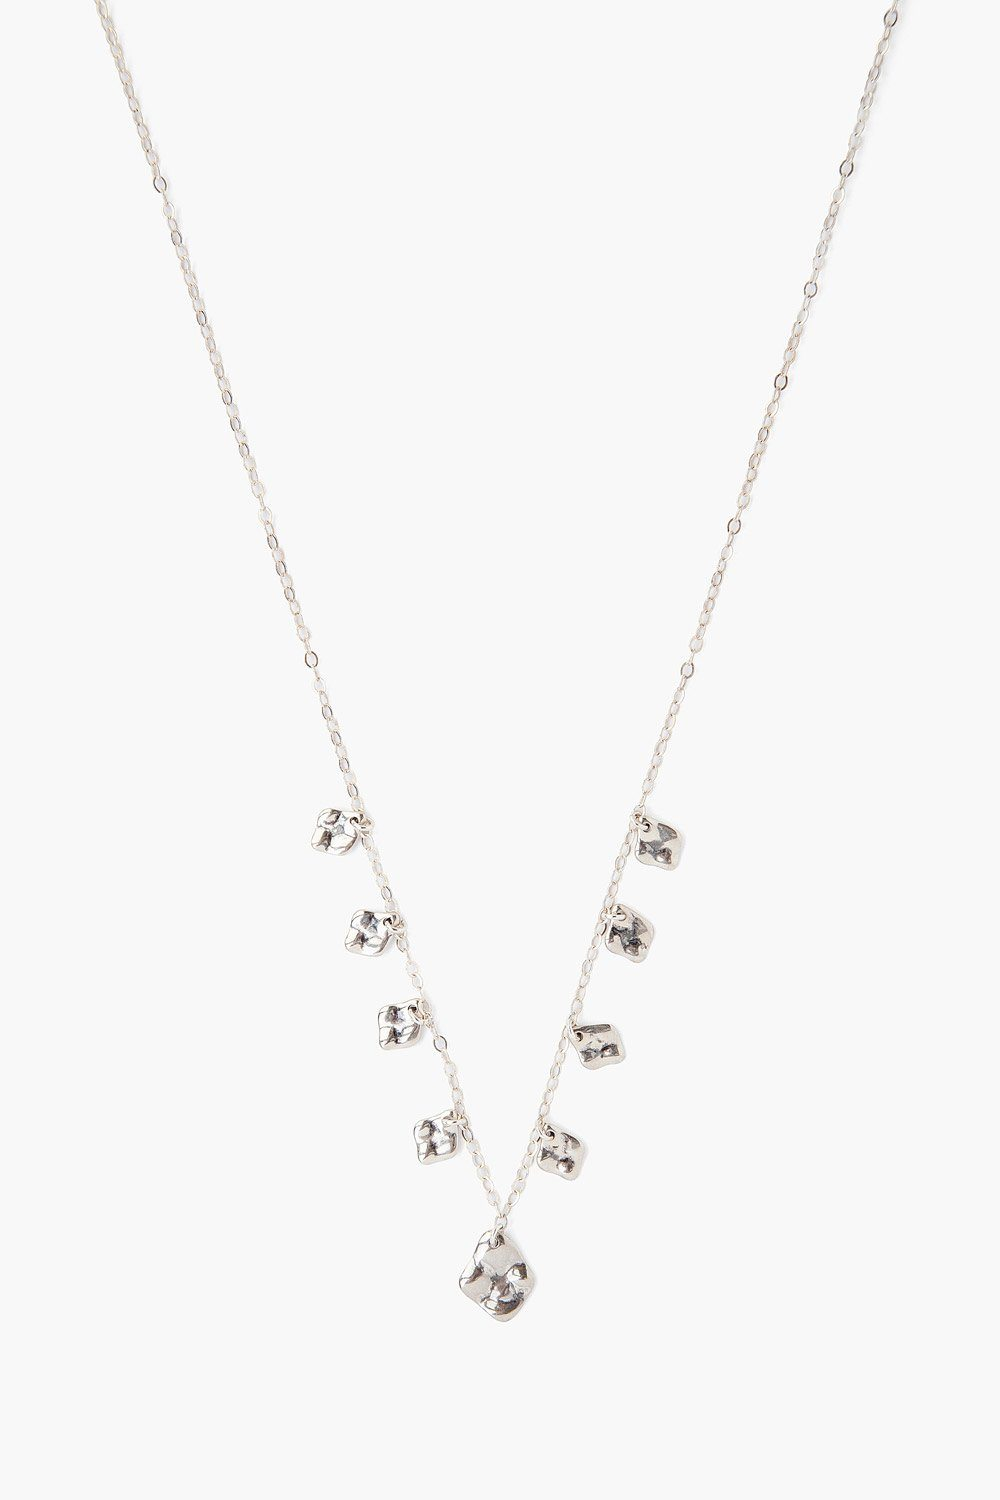 Silver Hammered Charm Necklace